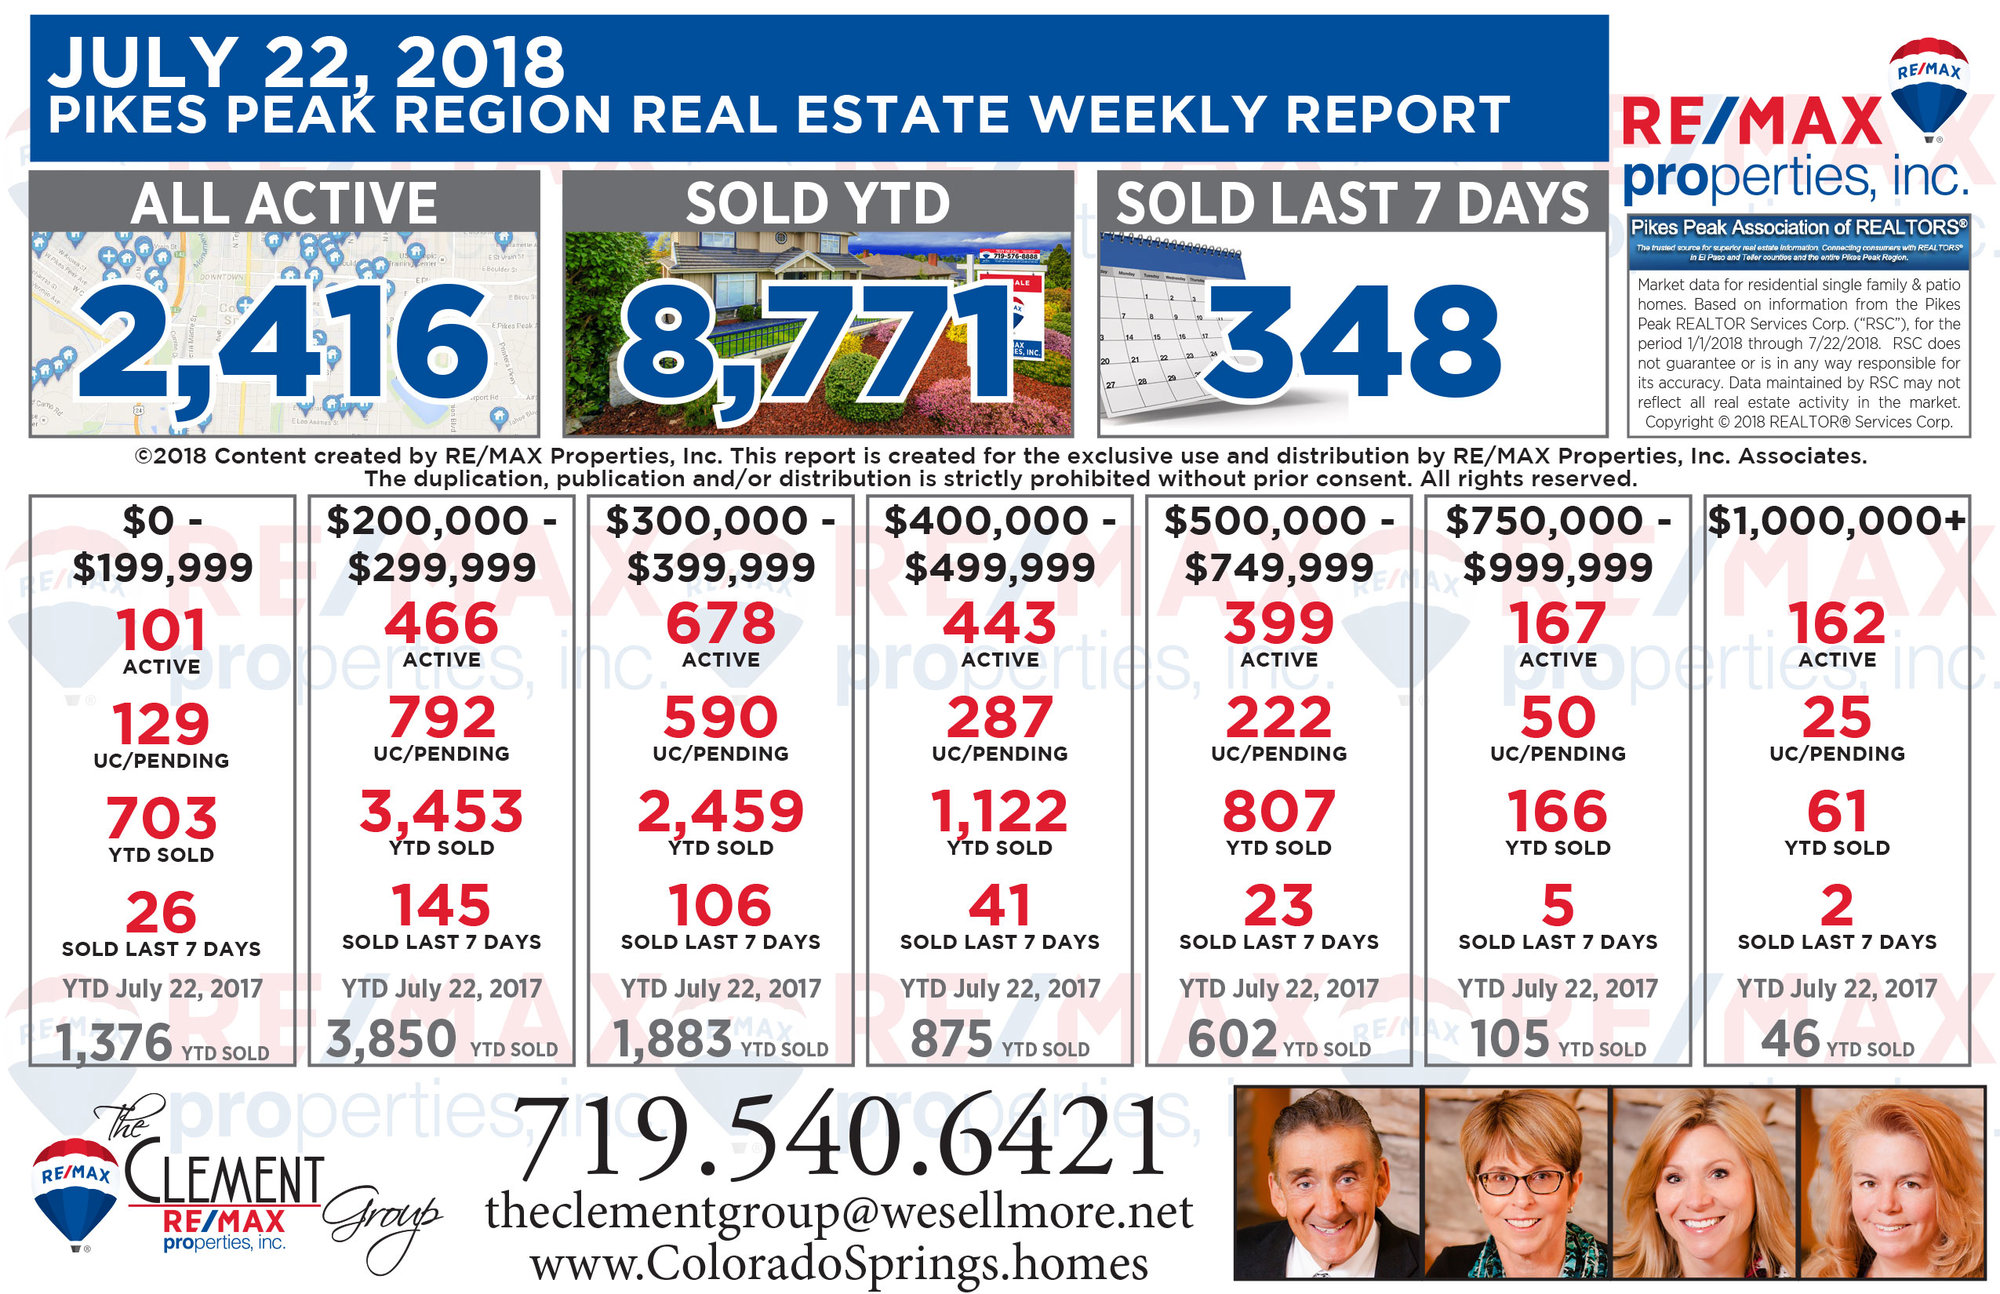 Colorado Springs Real Estate Market Weekly Update - July 22, 2018